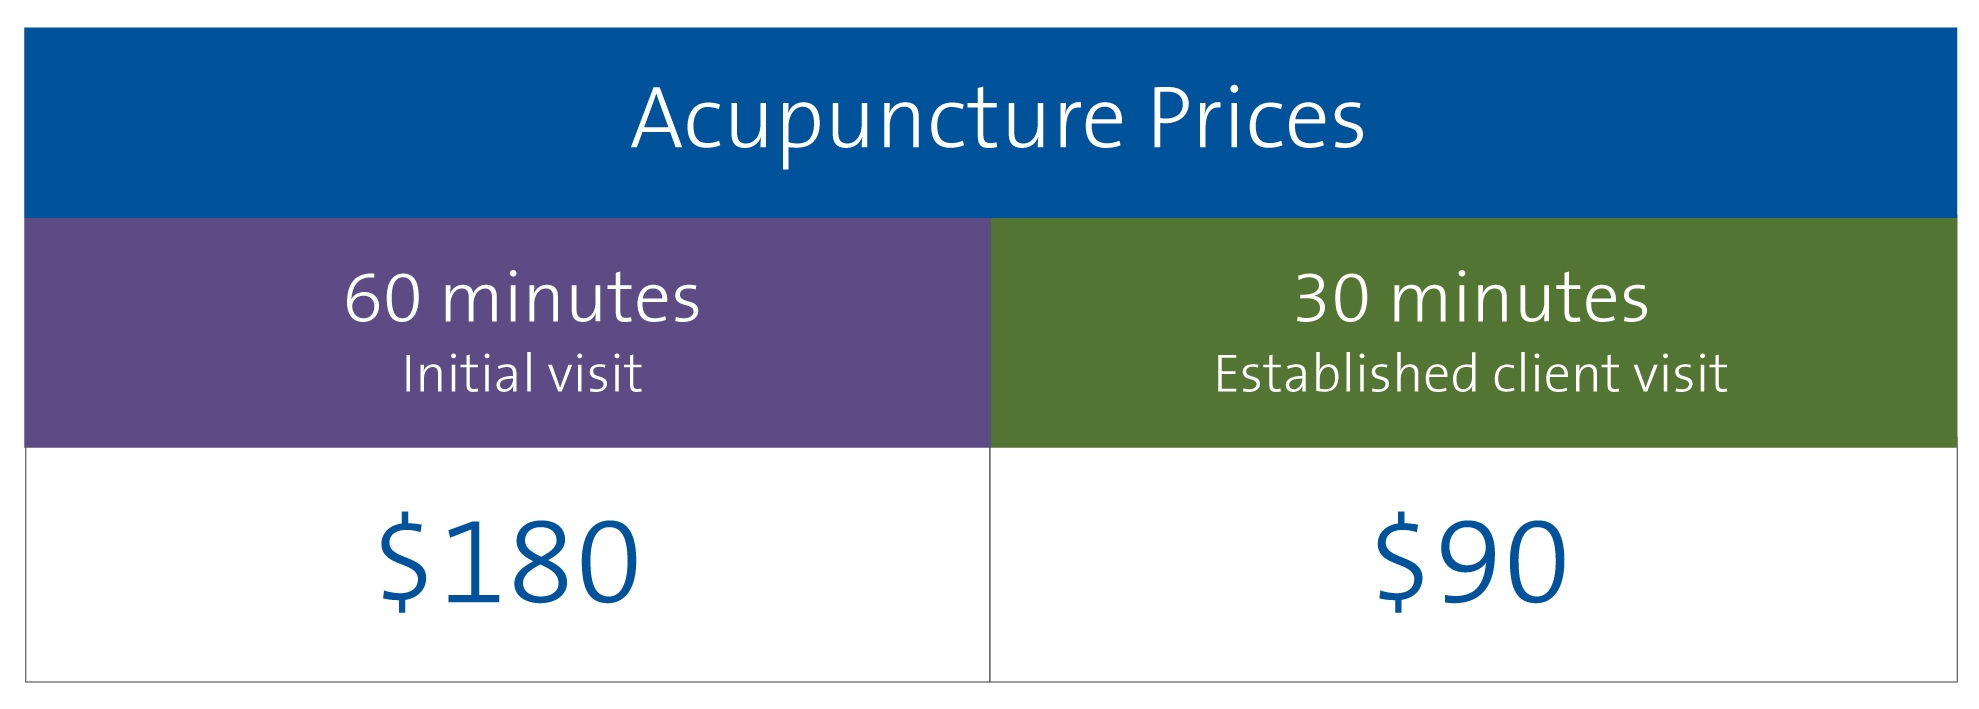 Acupuncture pricing at Duke Integrative Medicine